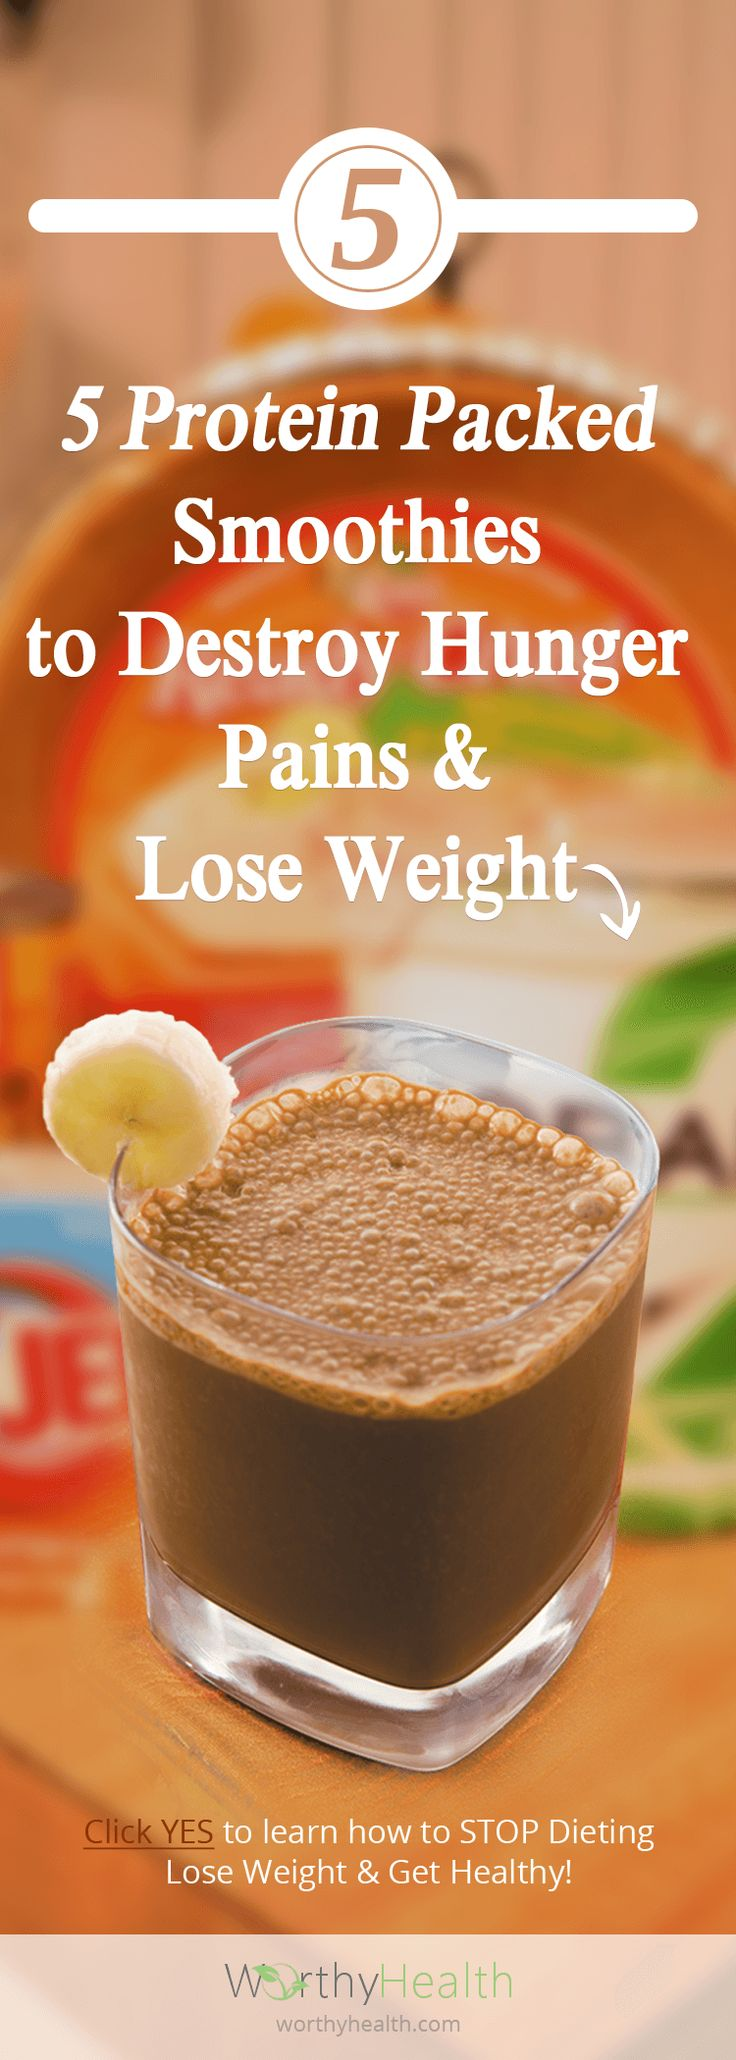 5 Protein Packed Smoothies to Destroy Hunger Pains and Lose Weight